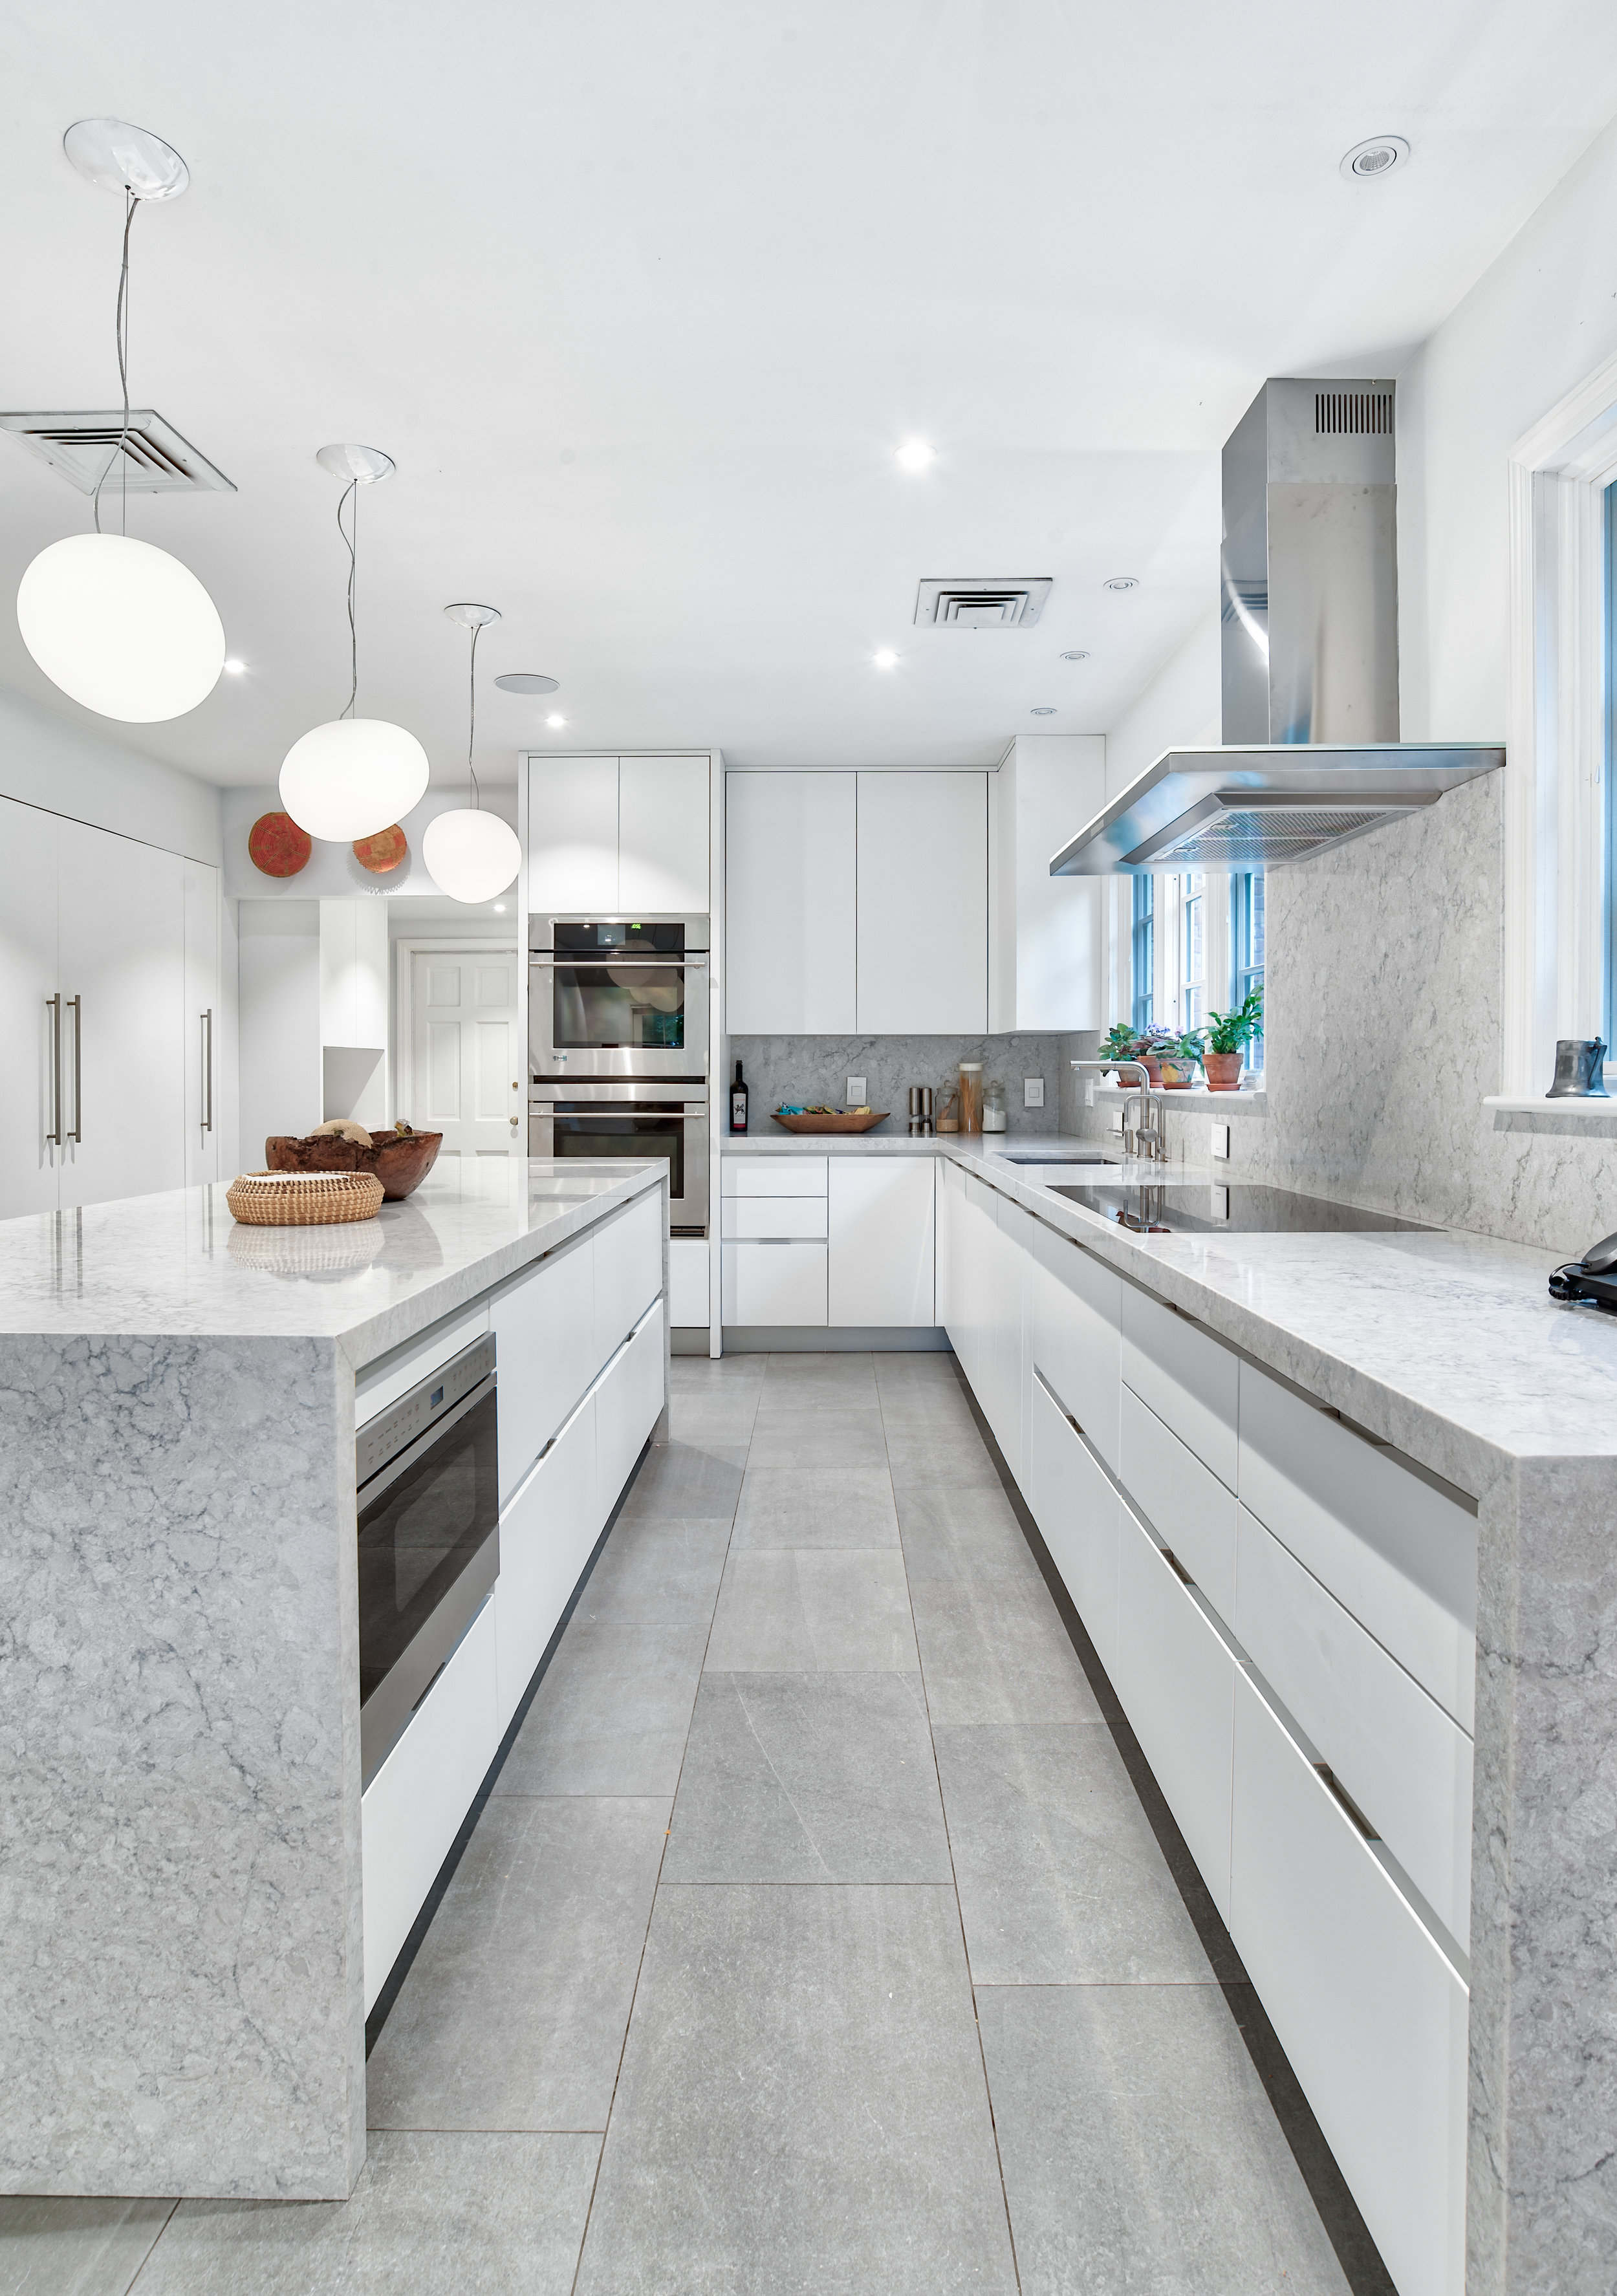 Kitchen Design Interior Remodeling Projects Teoria